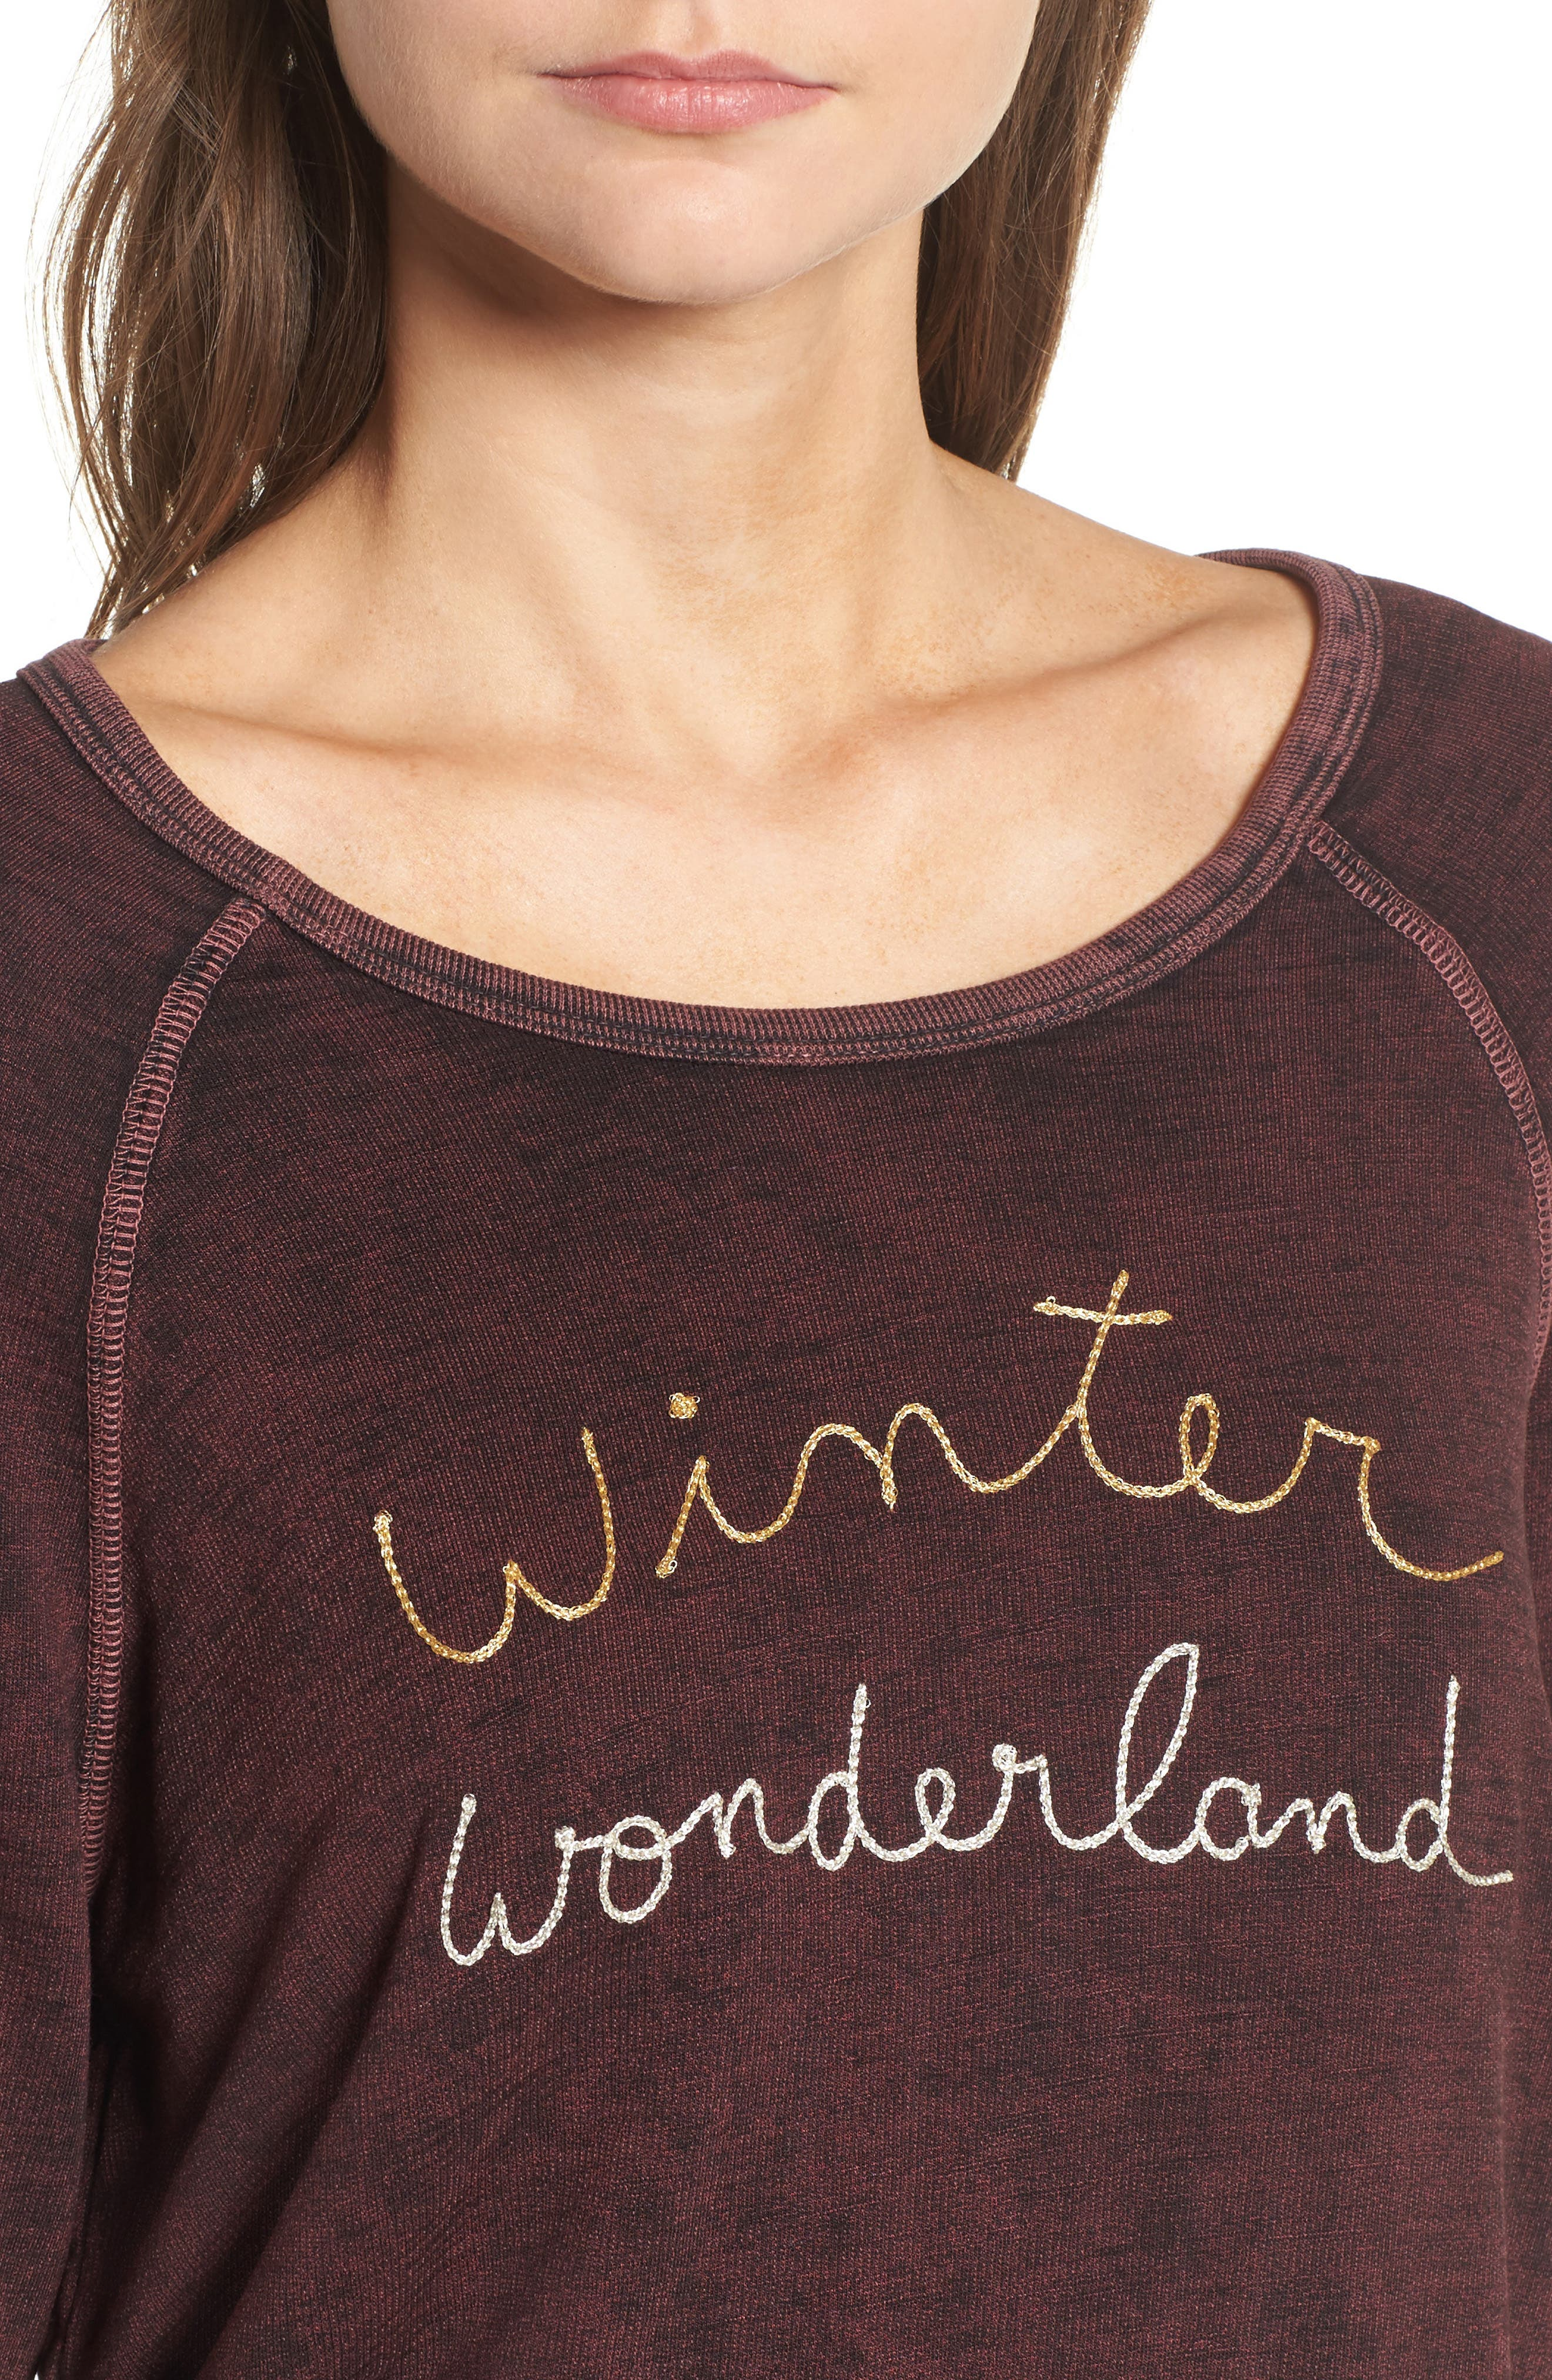 Active Winter Wonderland Sweatshirt,                             Alternate thumbnail 4, color,                             931